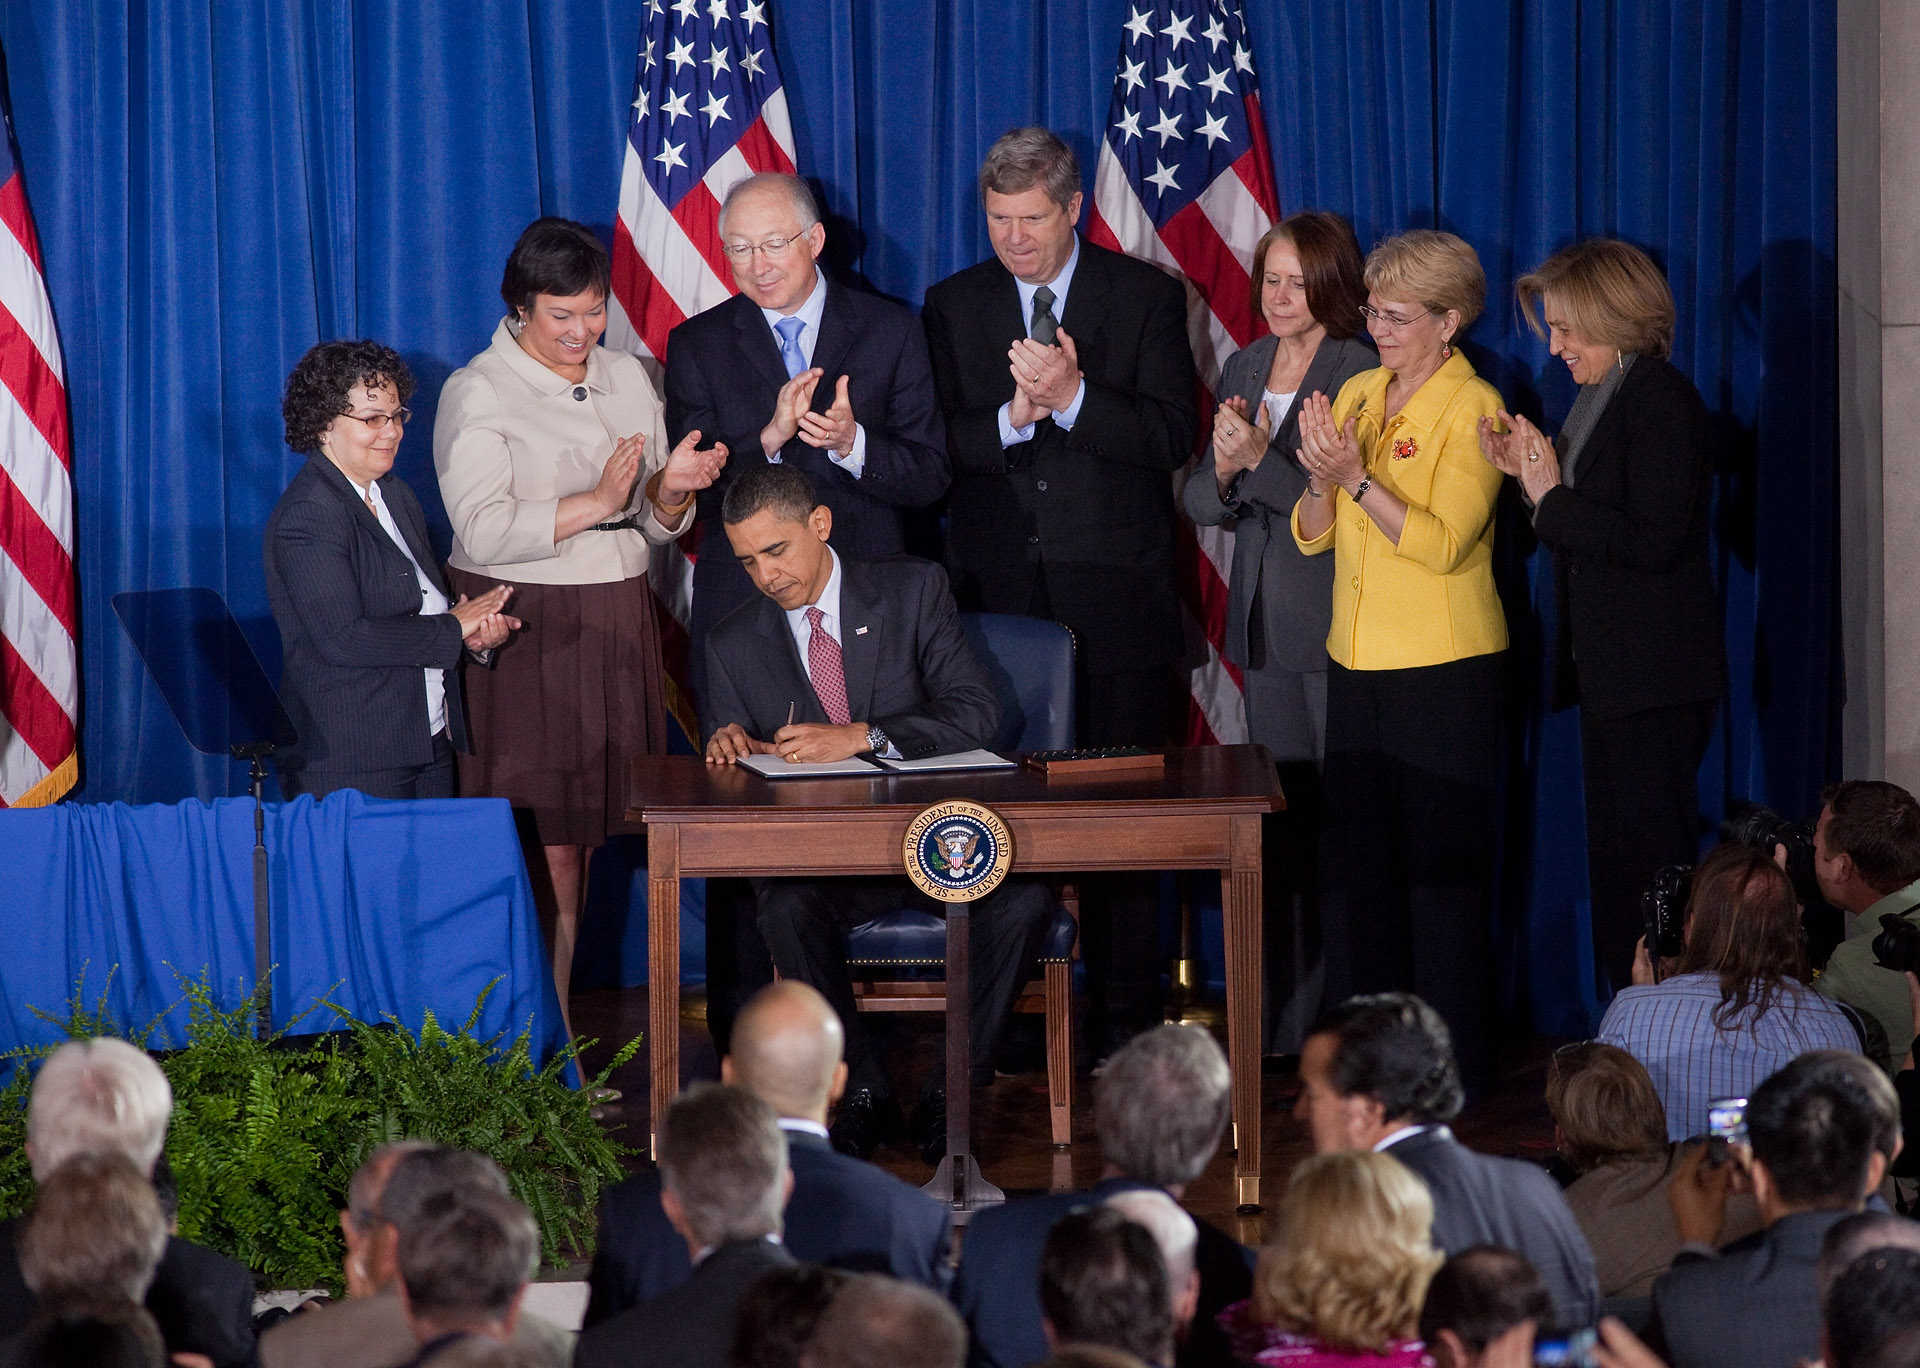 President Obama Signs Memorandum on America's Great Outdoors Initiative